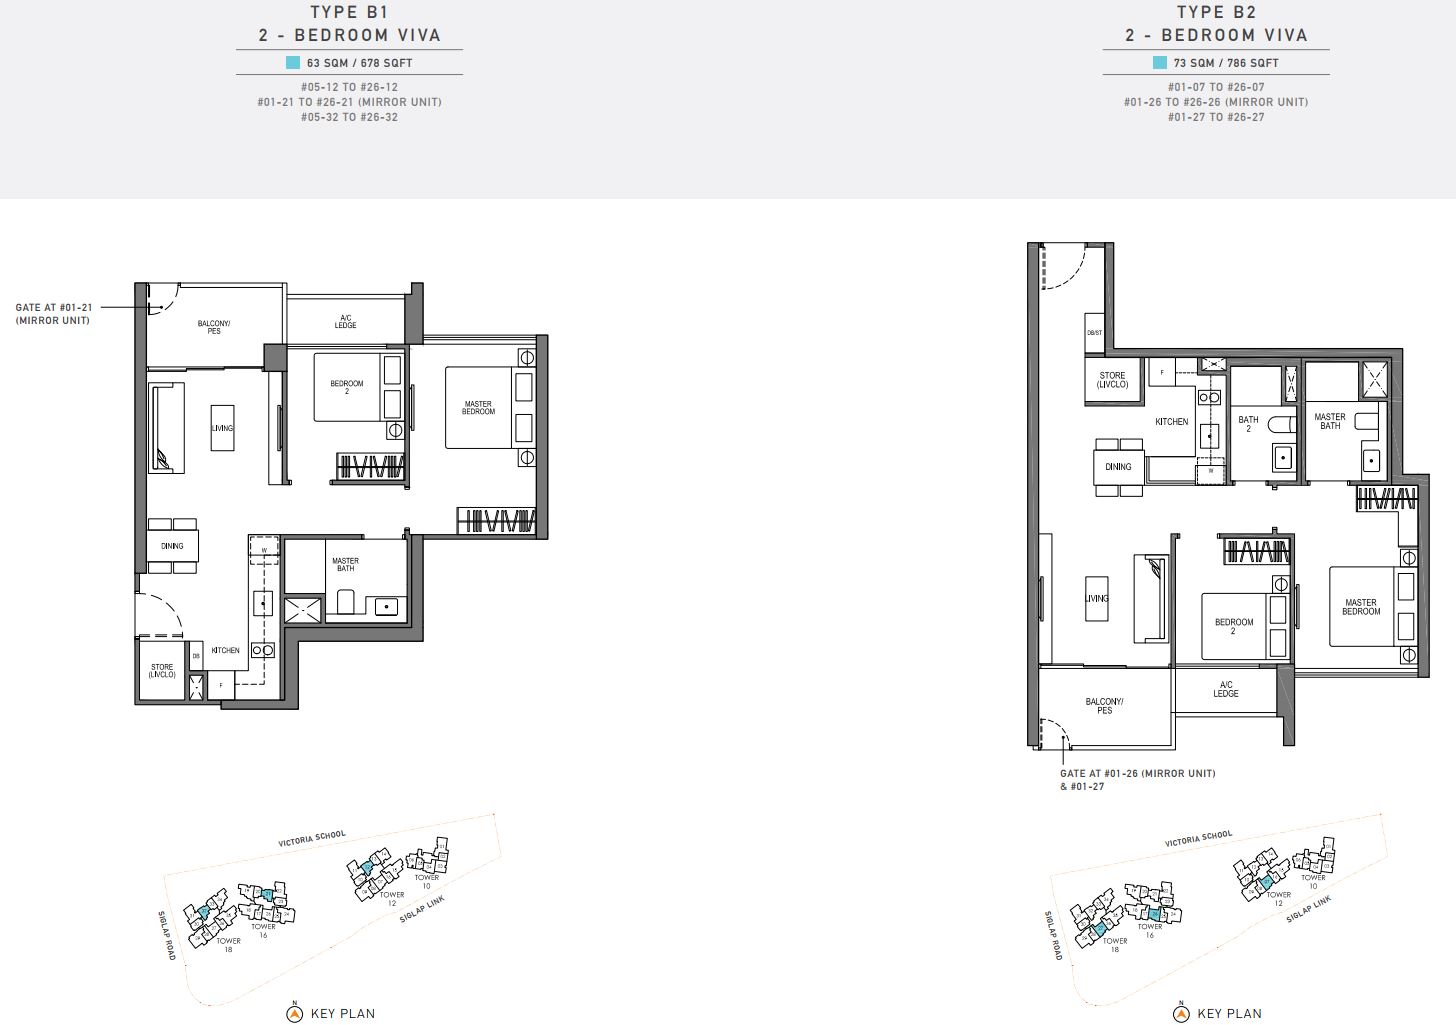 Seaside Residences FloorPlan - 2 Bedroom Viva